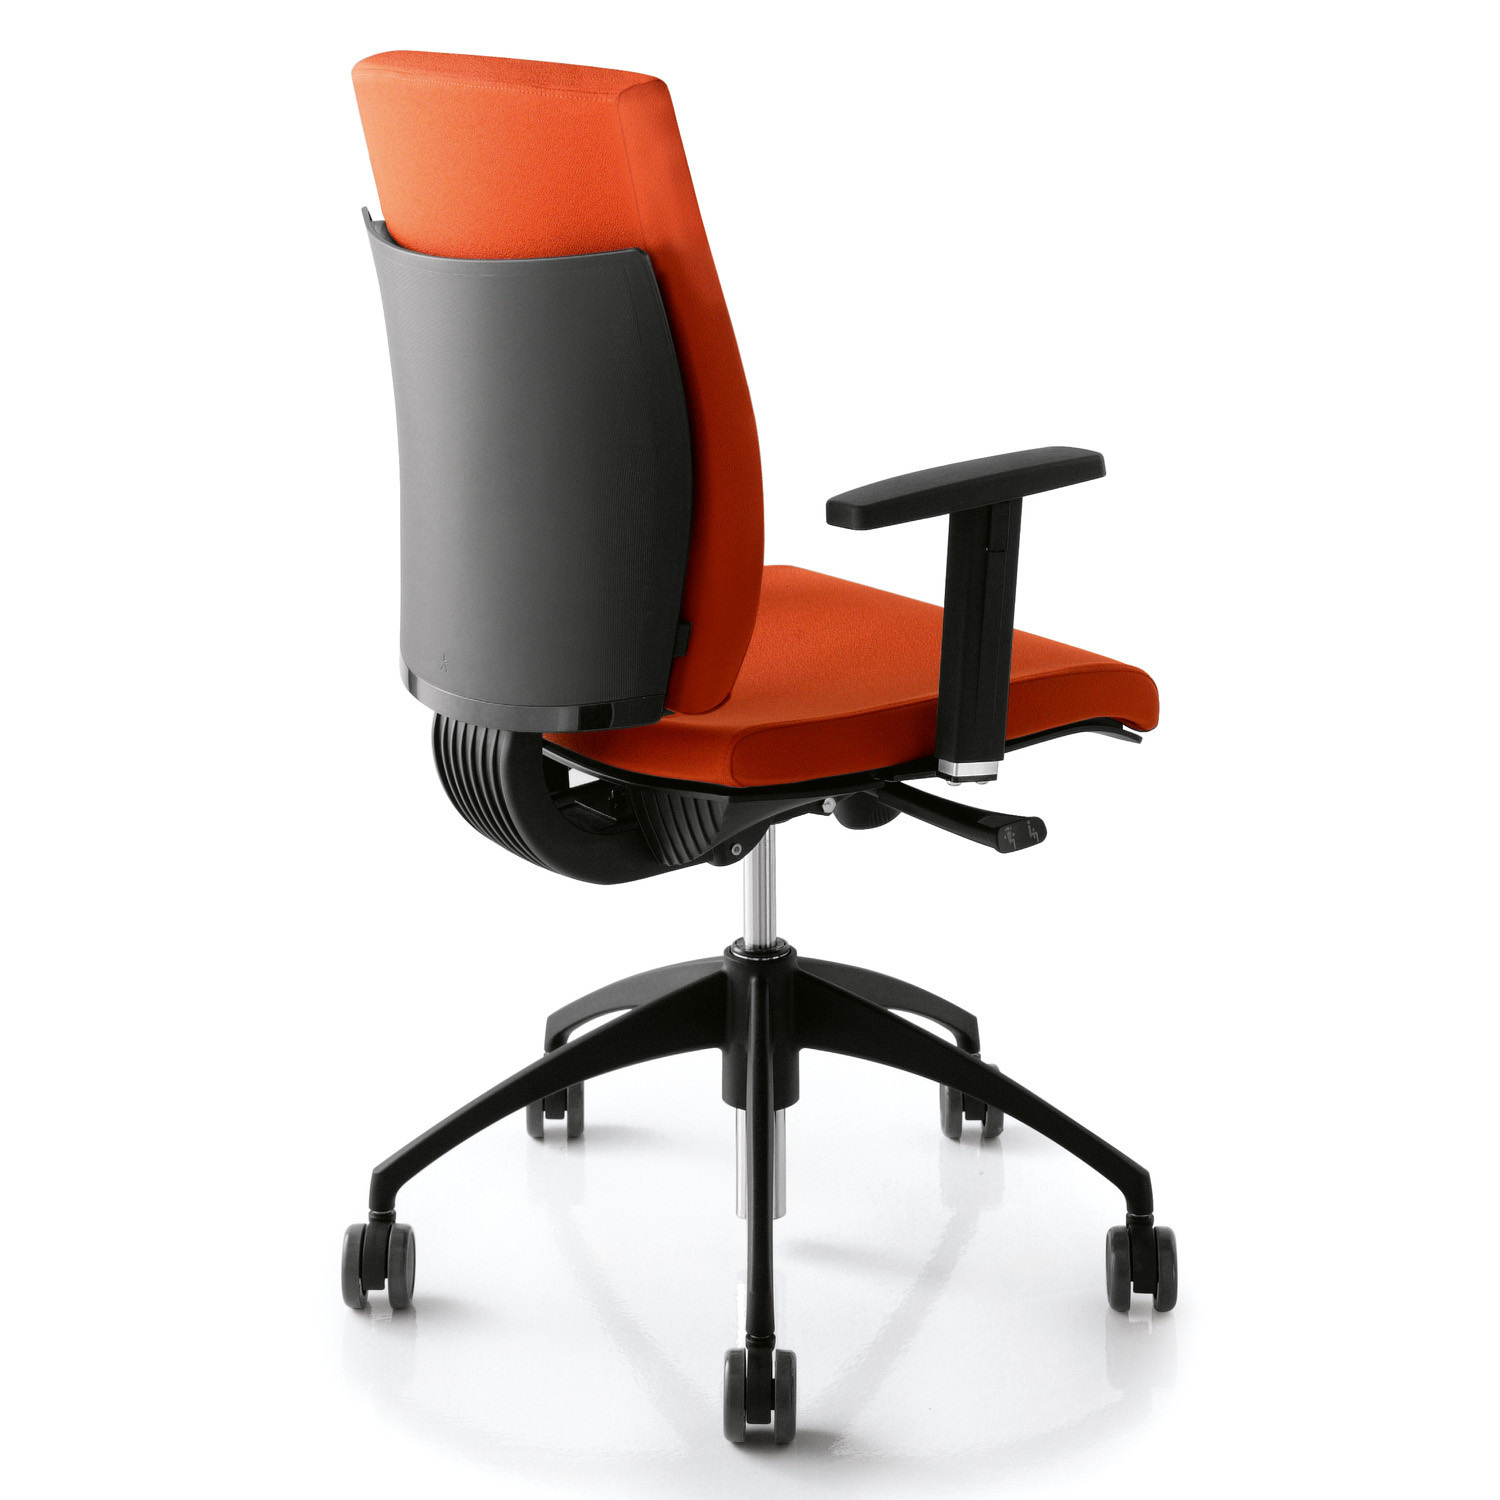 Pixel Ergonomic Office Chair